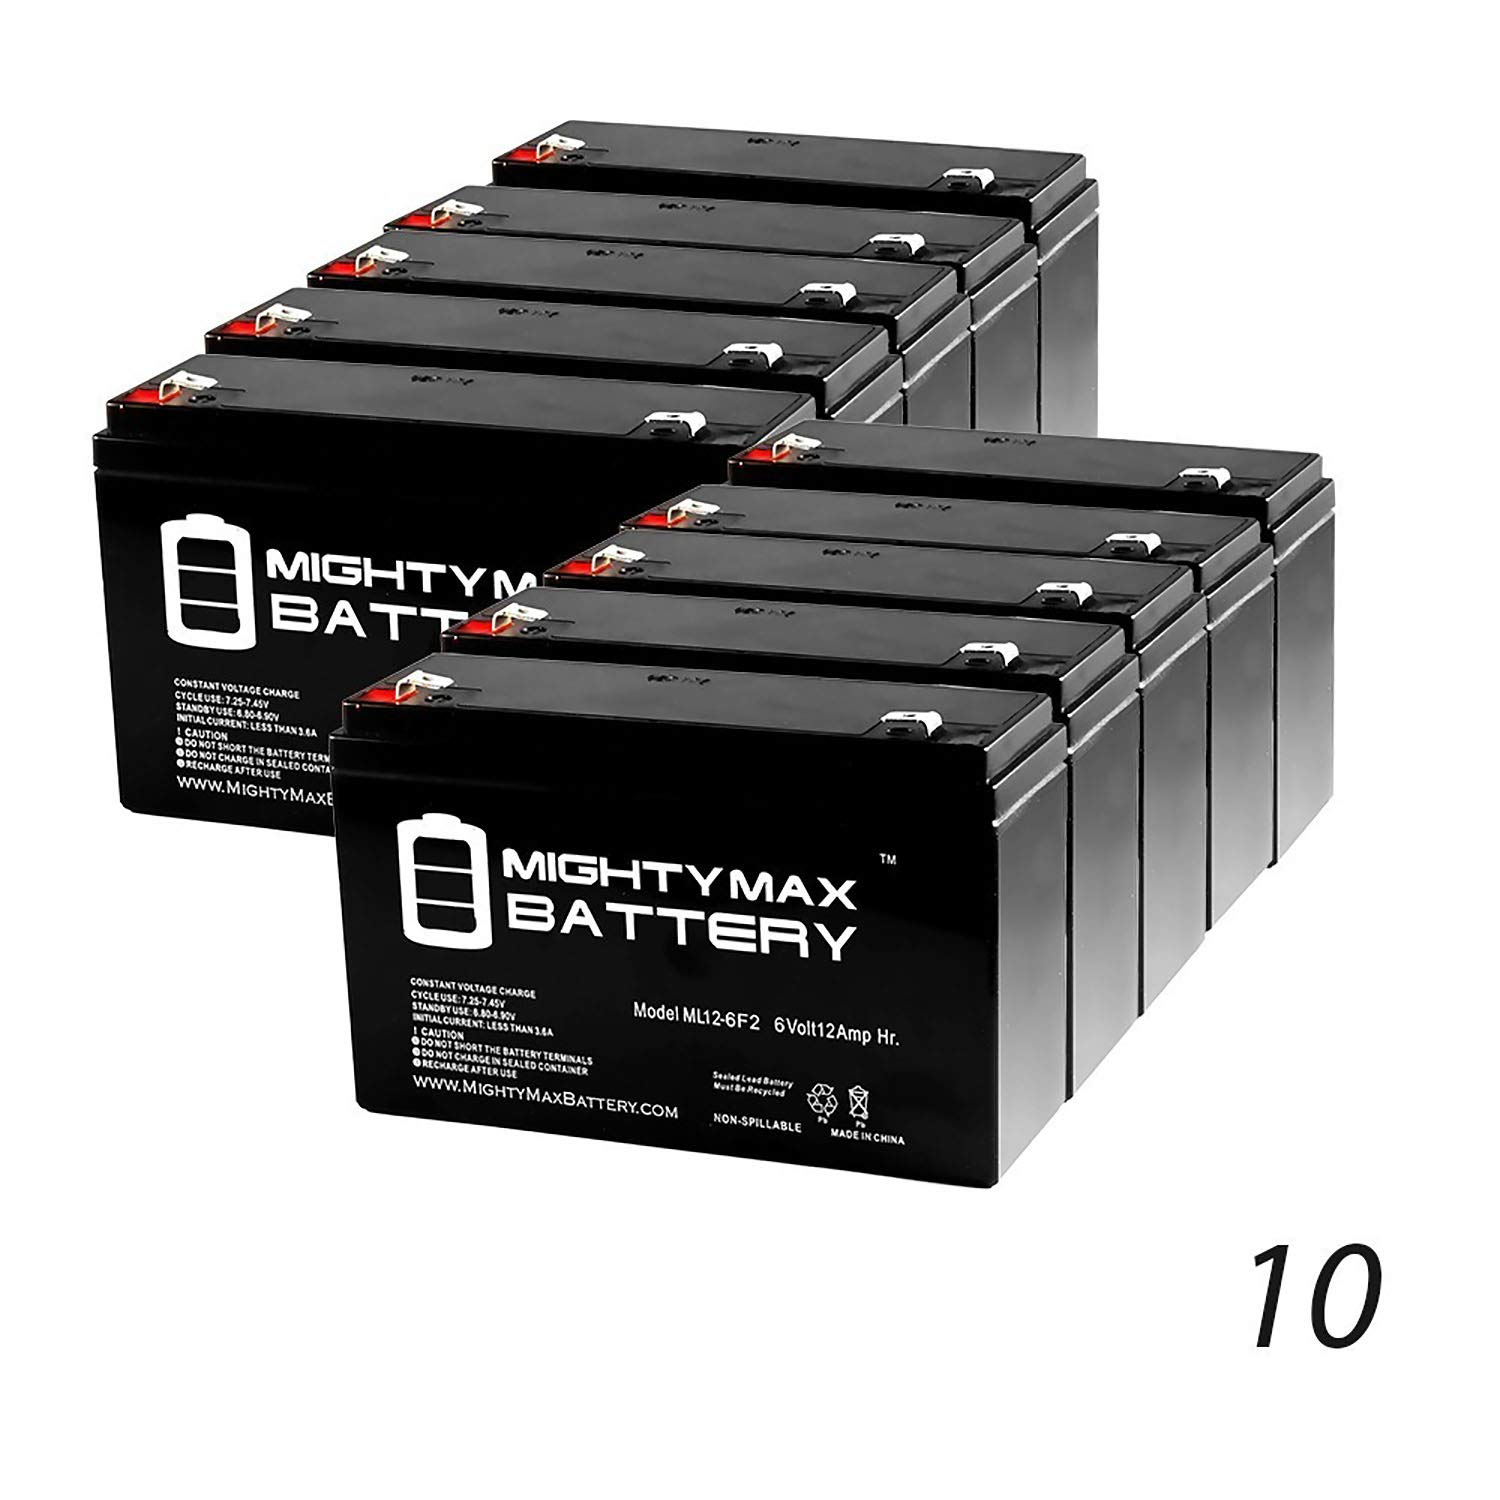 Mighty Max Battery 6V 12AH F2 SLA Replacement Battery for Dual Lite 0120800-10 Pack Brand Product